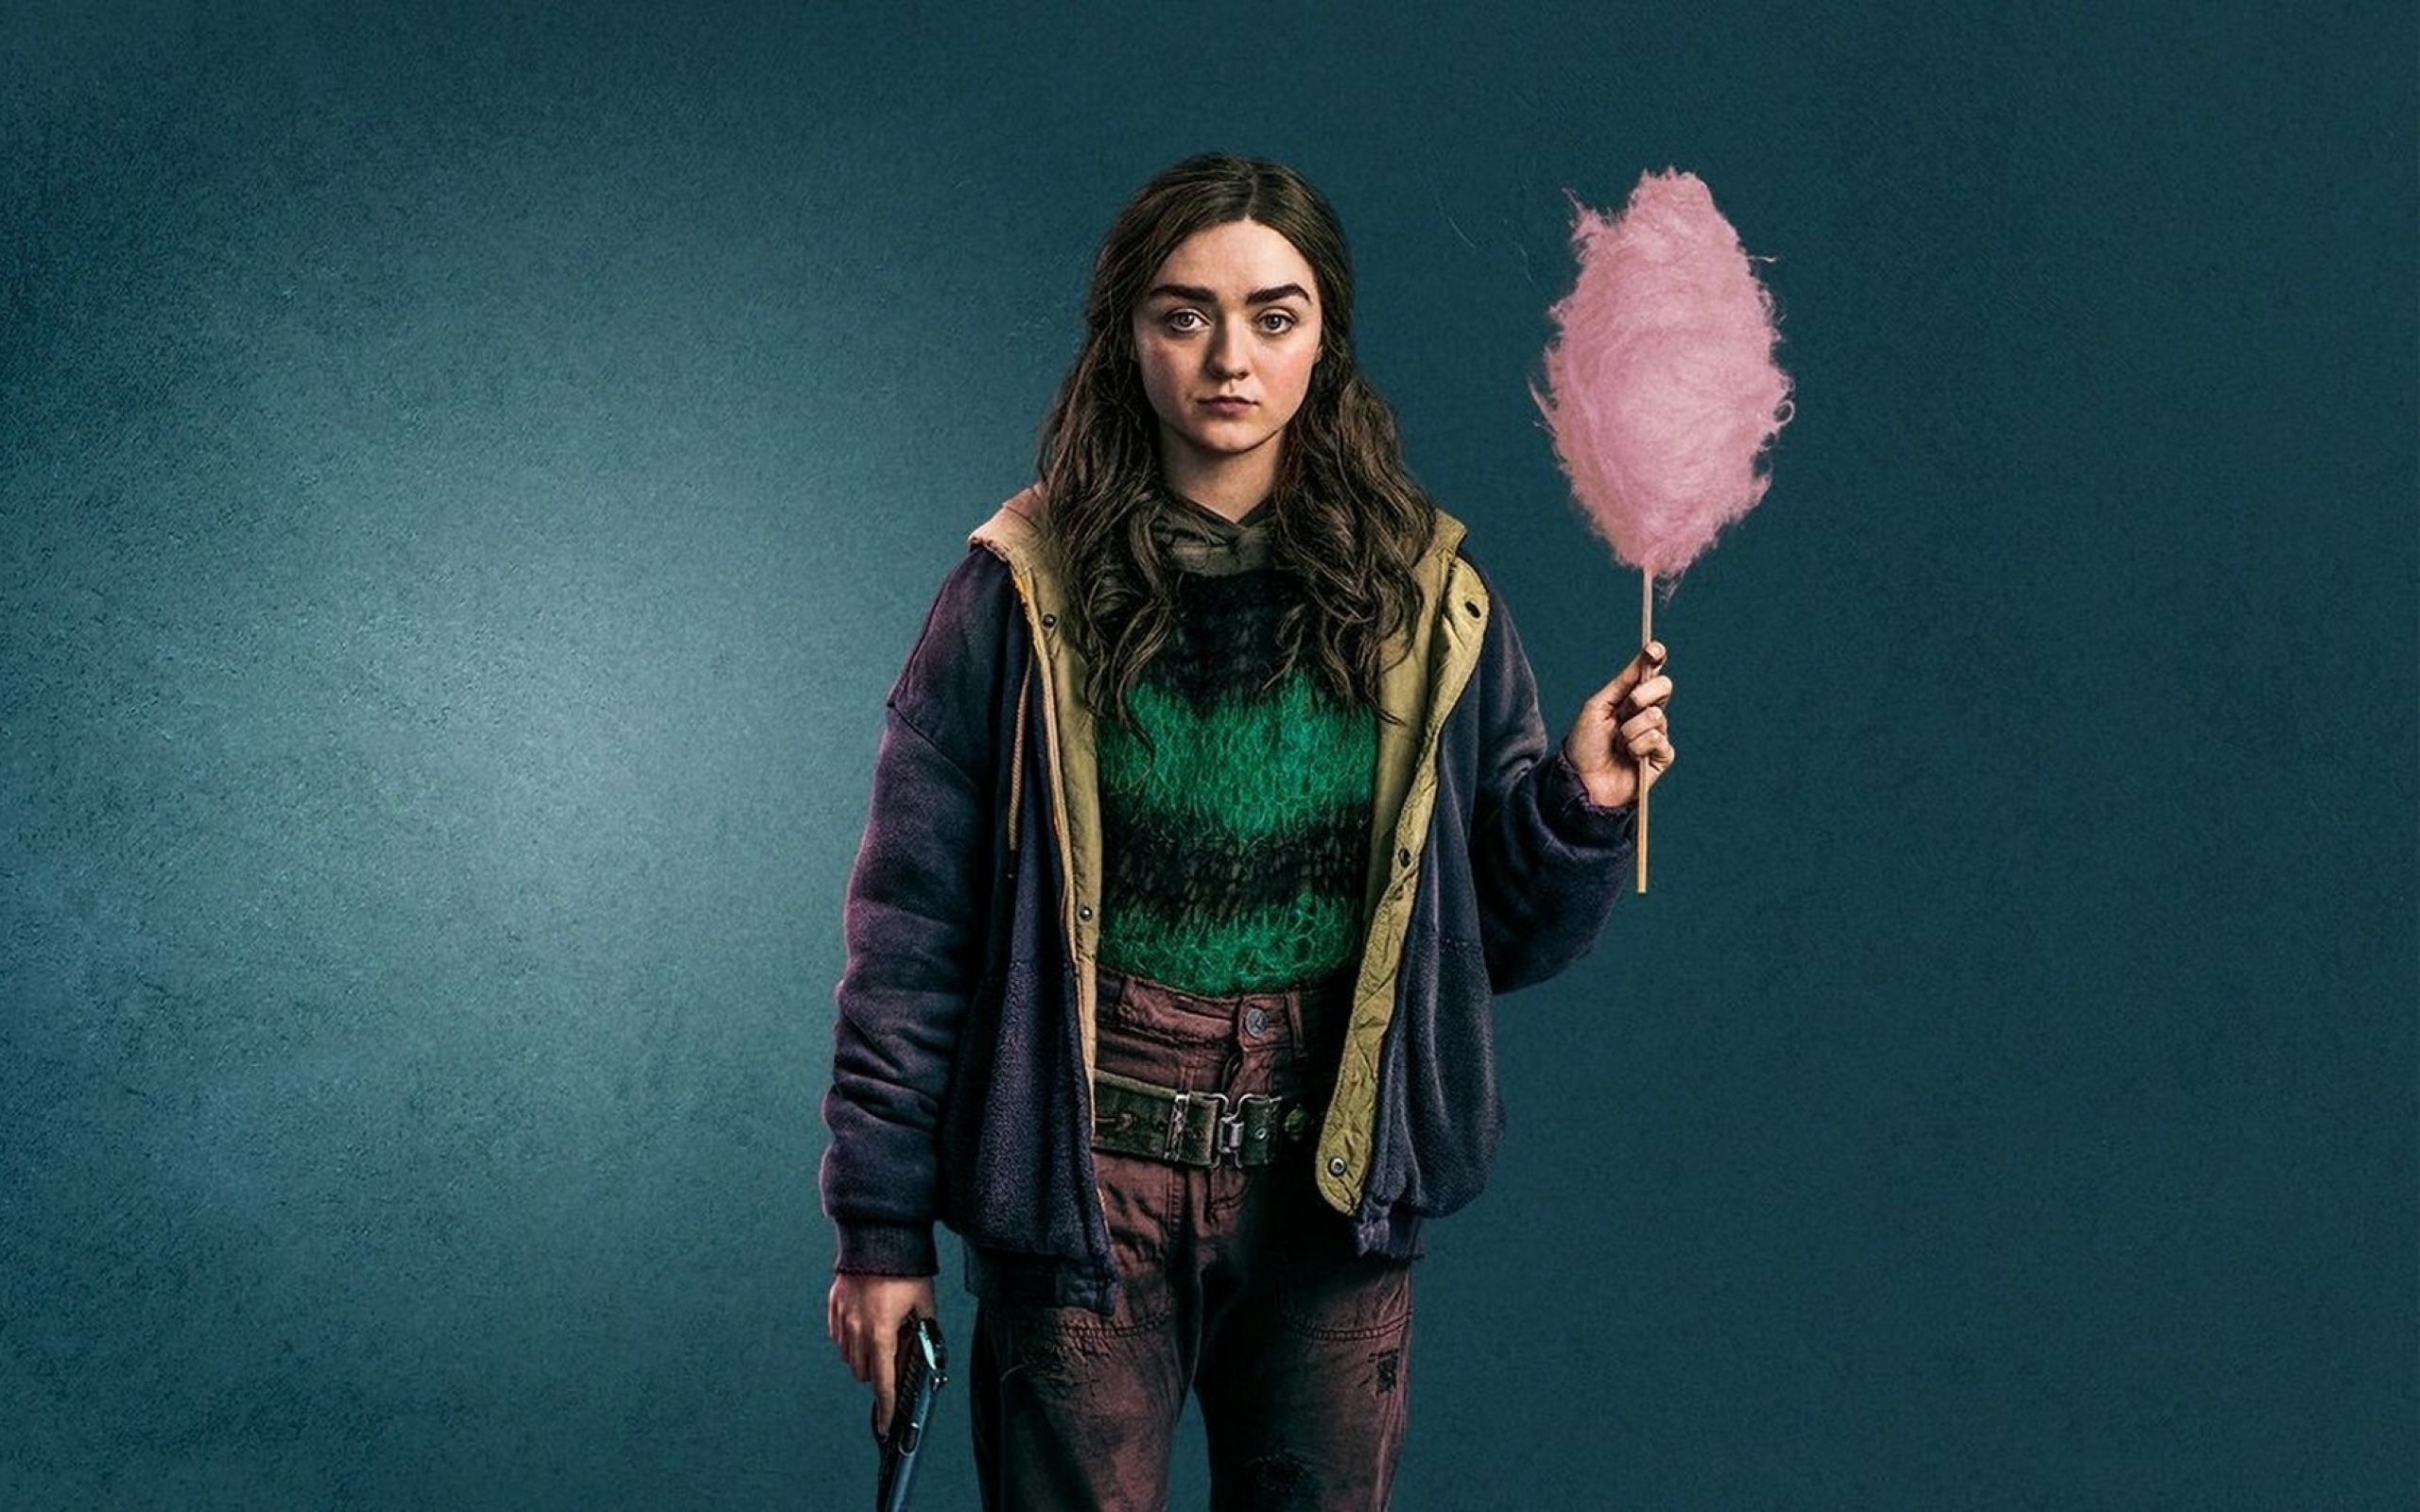 Maisie Williams Two Weeks To Live Wallpaper in 2560x1600 Resolution